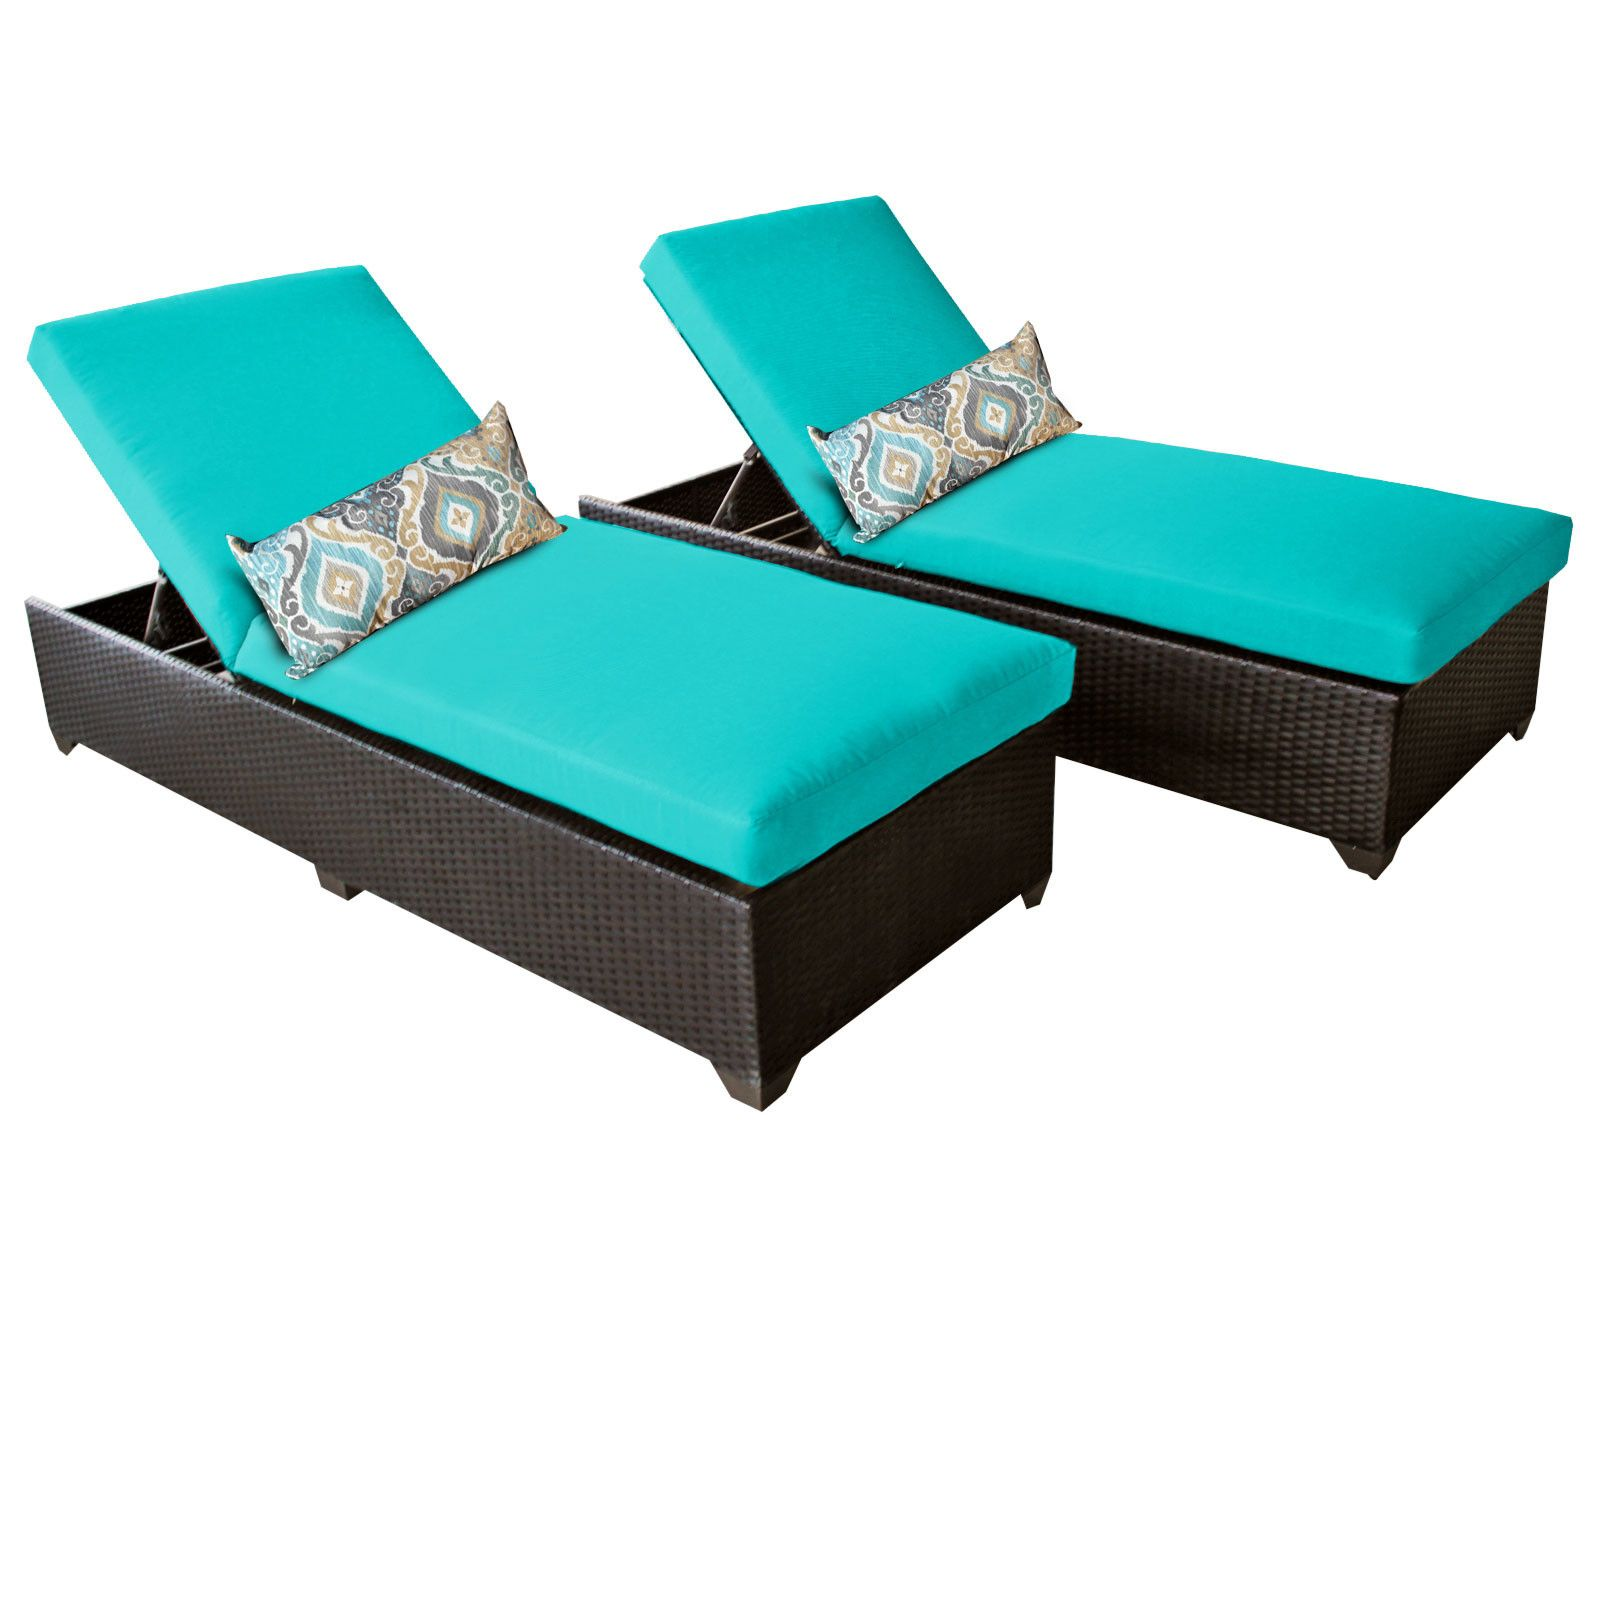 Classic 2 Piece Chaise Lounge Set with Cushion